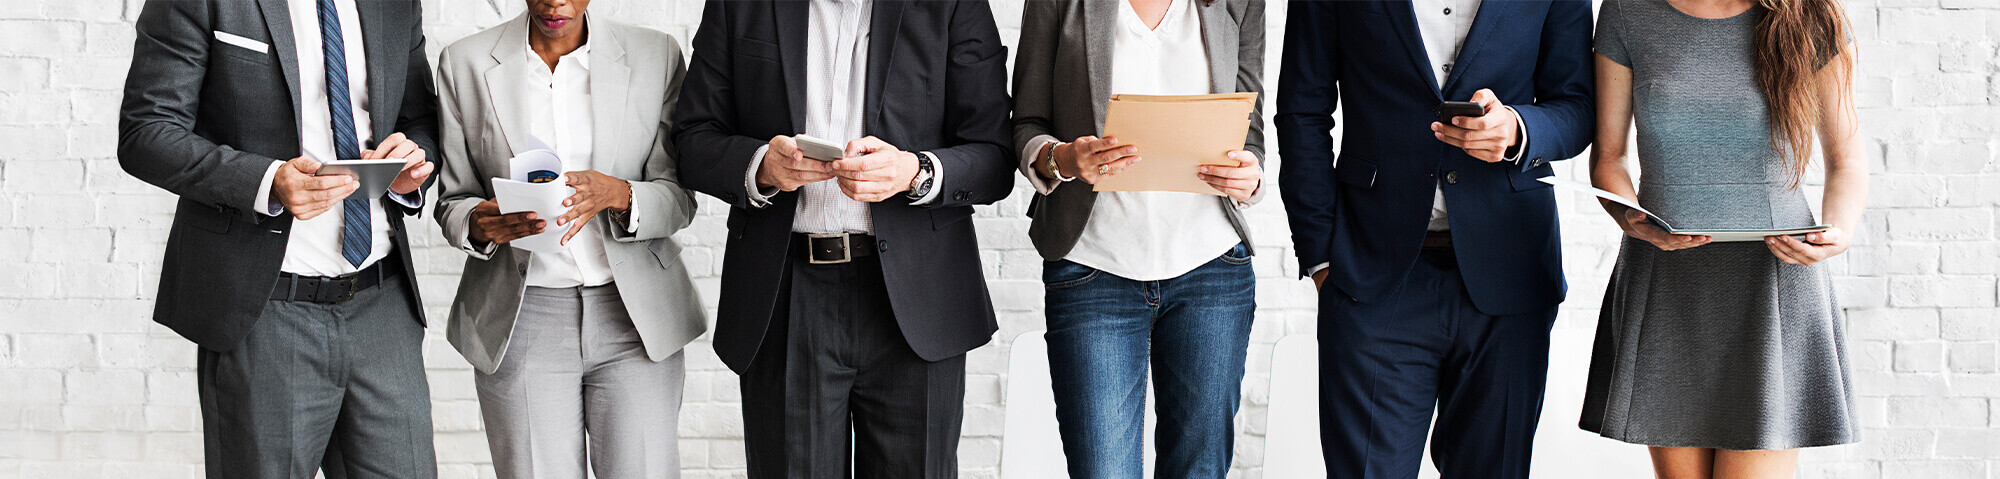 How To Hire The Perfect Employee For Your Startup